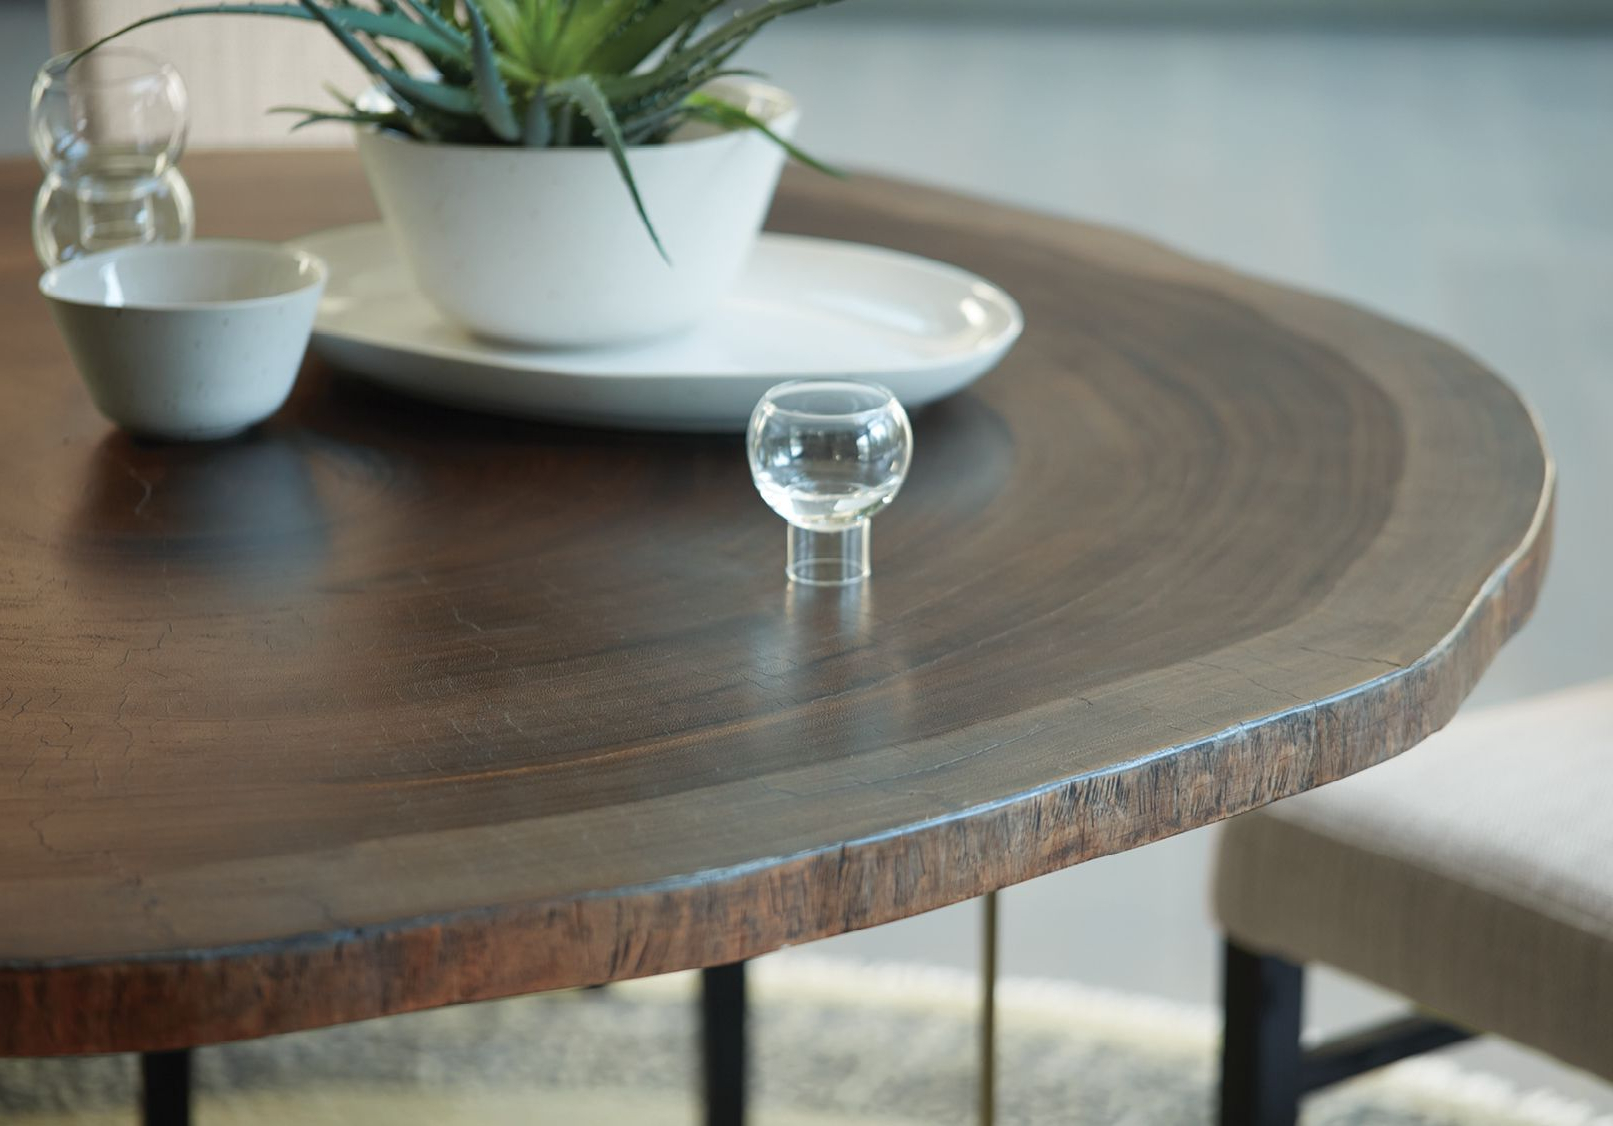 Most Popular Handcrafted In Mexico, The Stunning Reina Dining Table Throughout Montalvo Round Dining Tables (View 6 of 25)